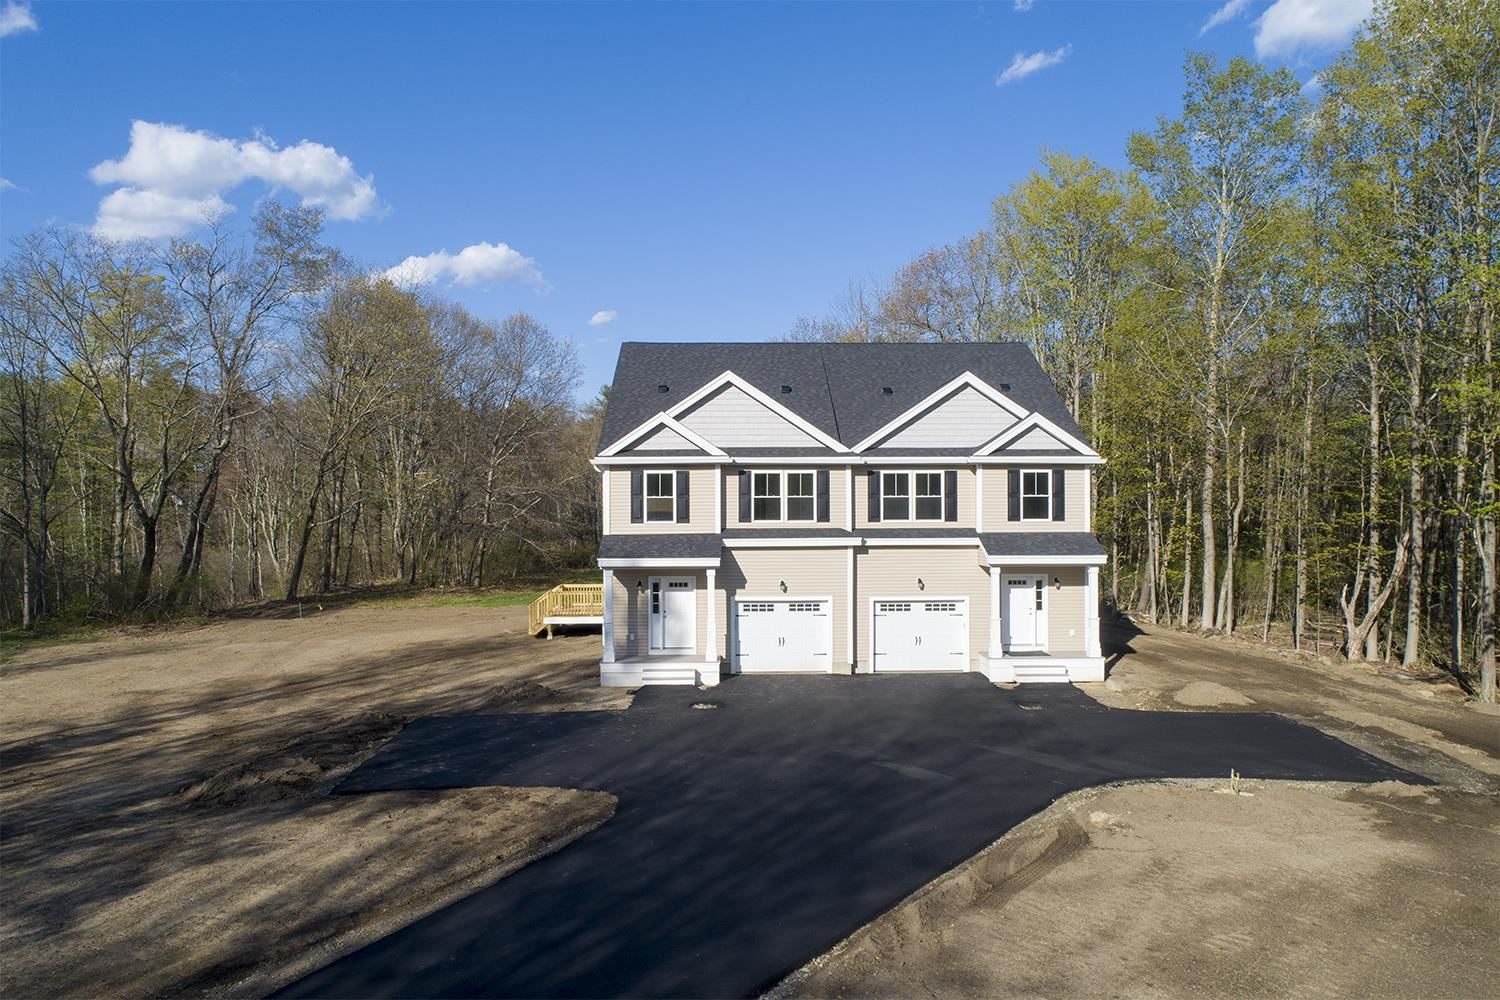 Photo of 258 Wadleigh Falls Road Newmarket NH 03857